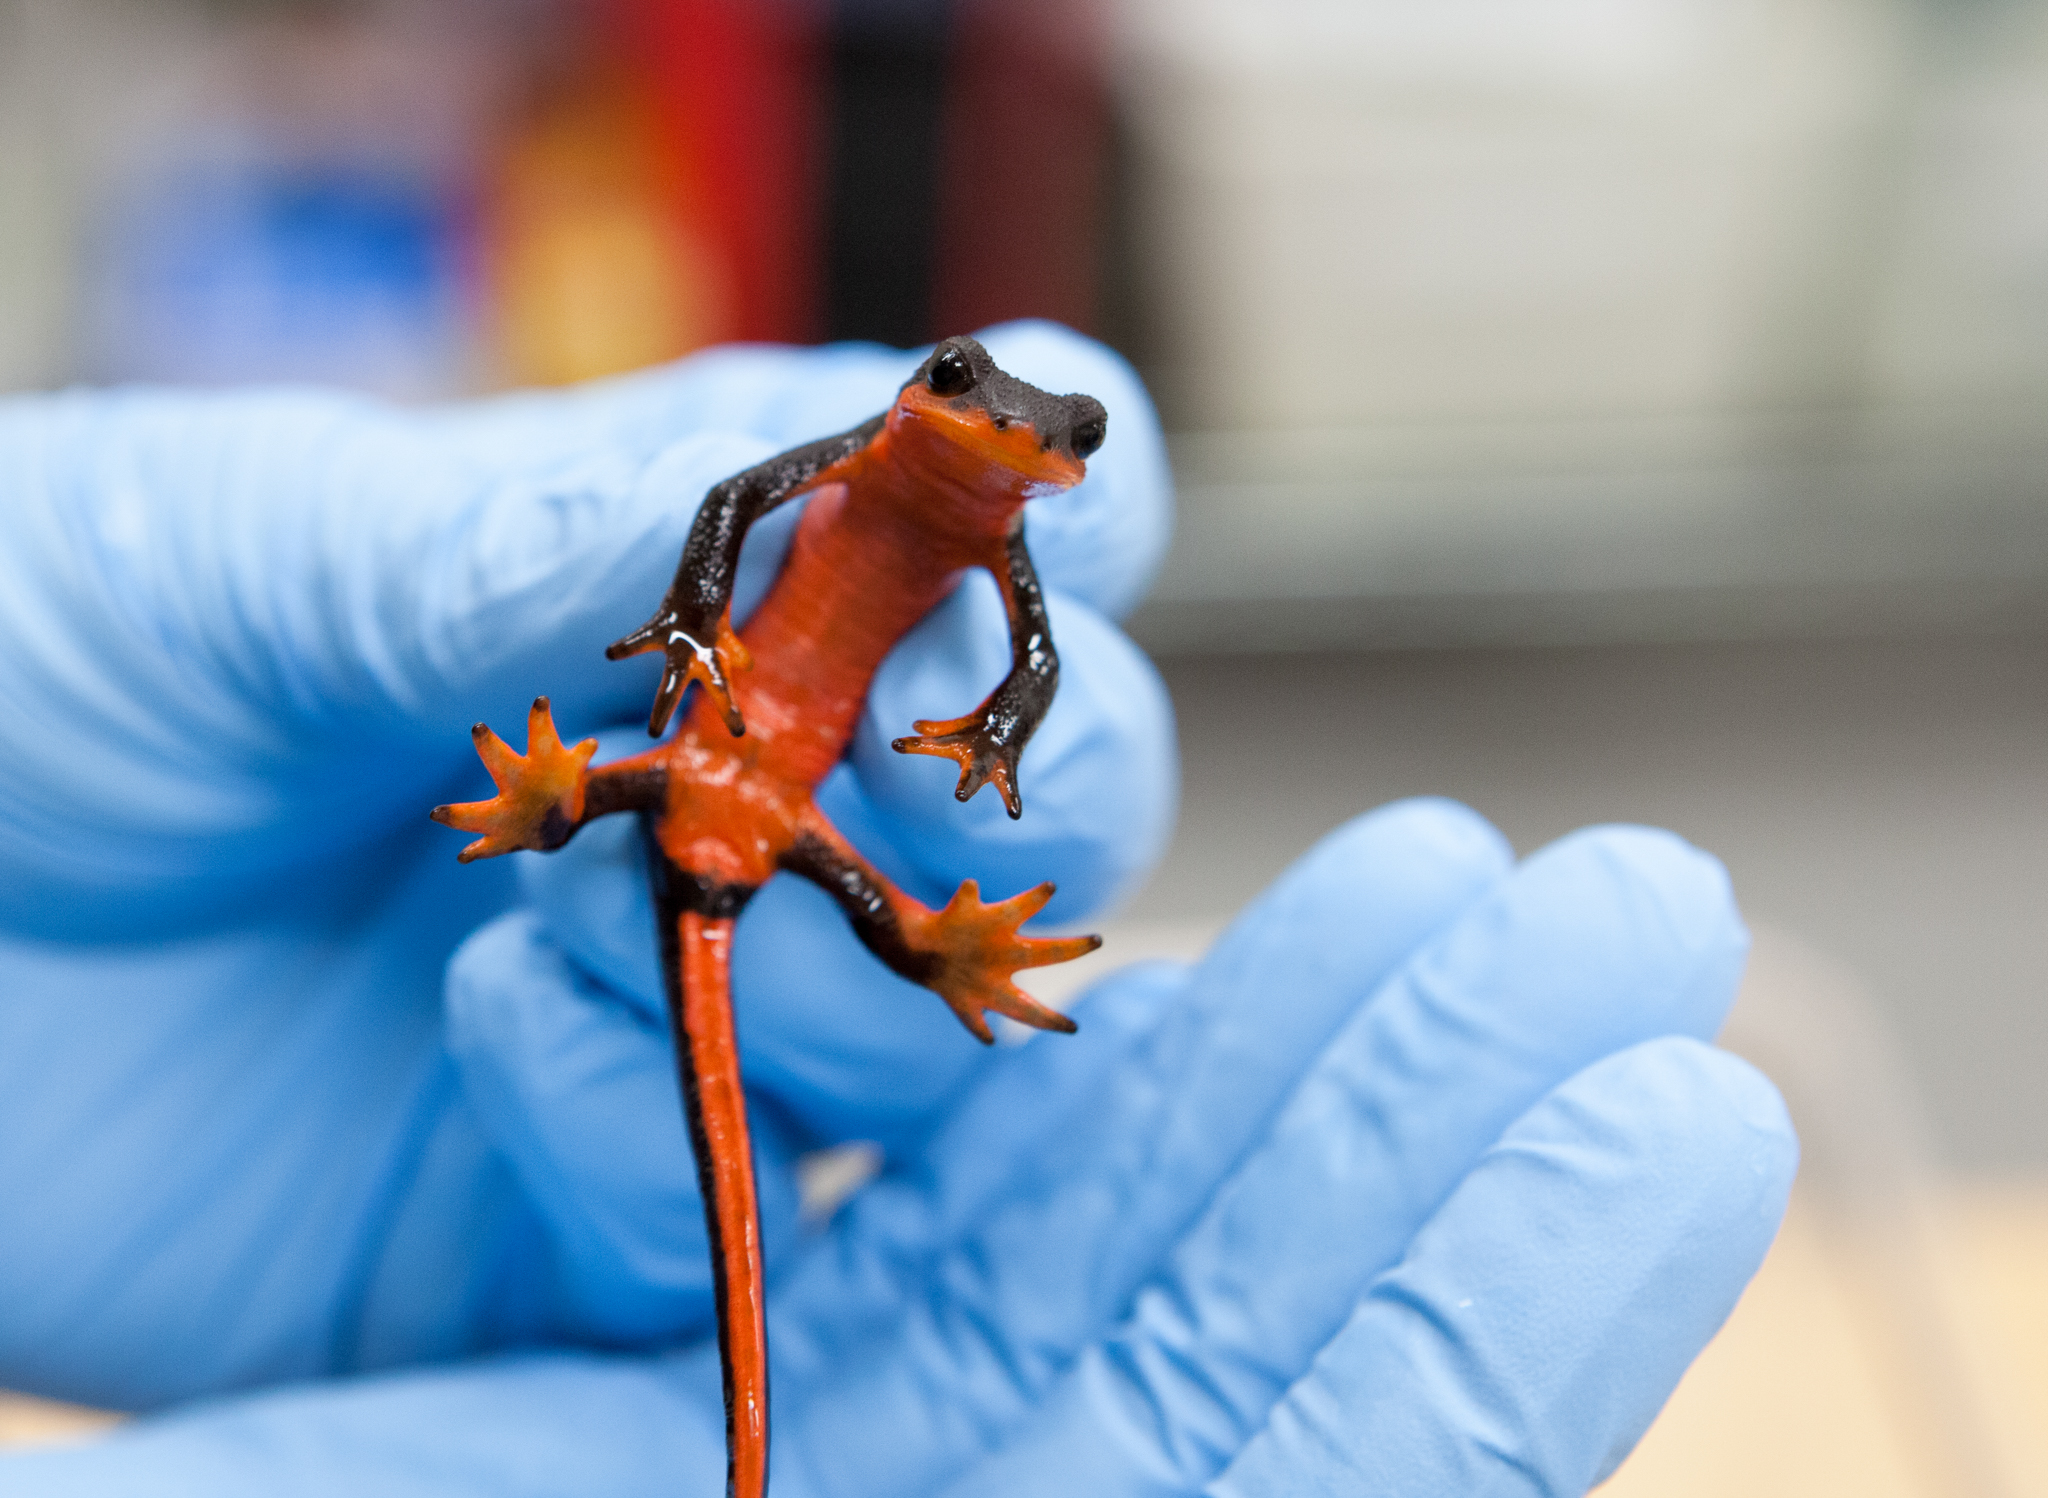 Vredenburg holds a red-bellied newt (Taricha rivularis) in his lab, another subject for his upcoming trial on Bsal susceptibility. While a 2014 paper indicated that another species of this genus was highly susceptible to Bsal, Vredenburg says that more testing is necessary to confirm those findings. Photograph by Geoffrey Giller